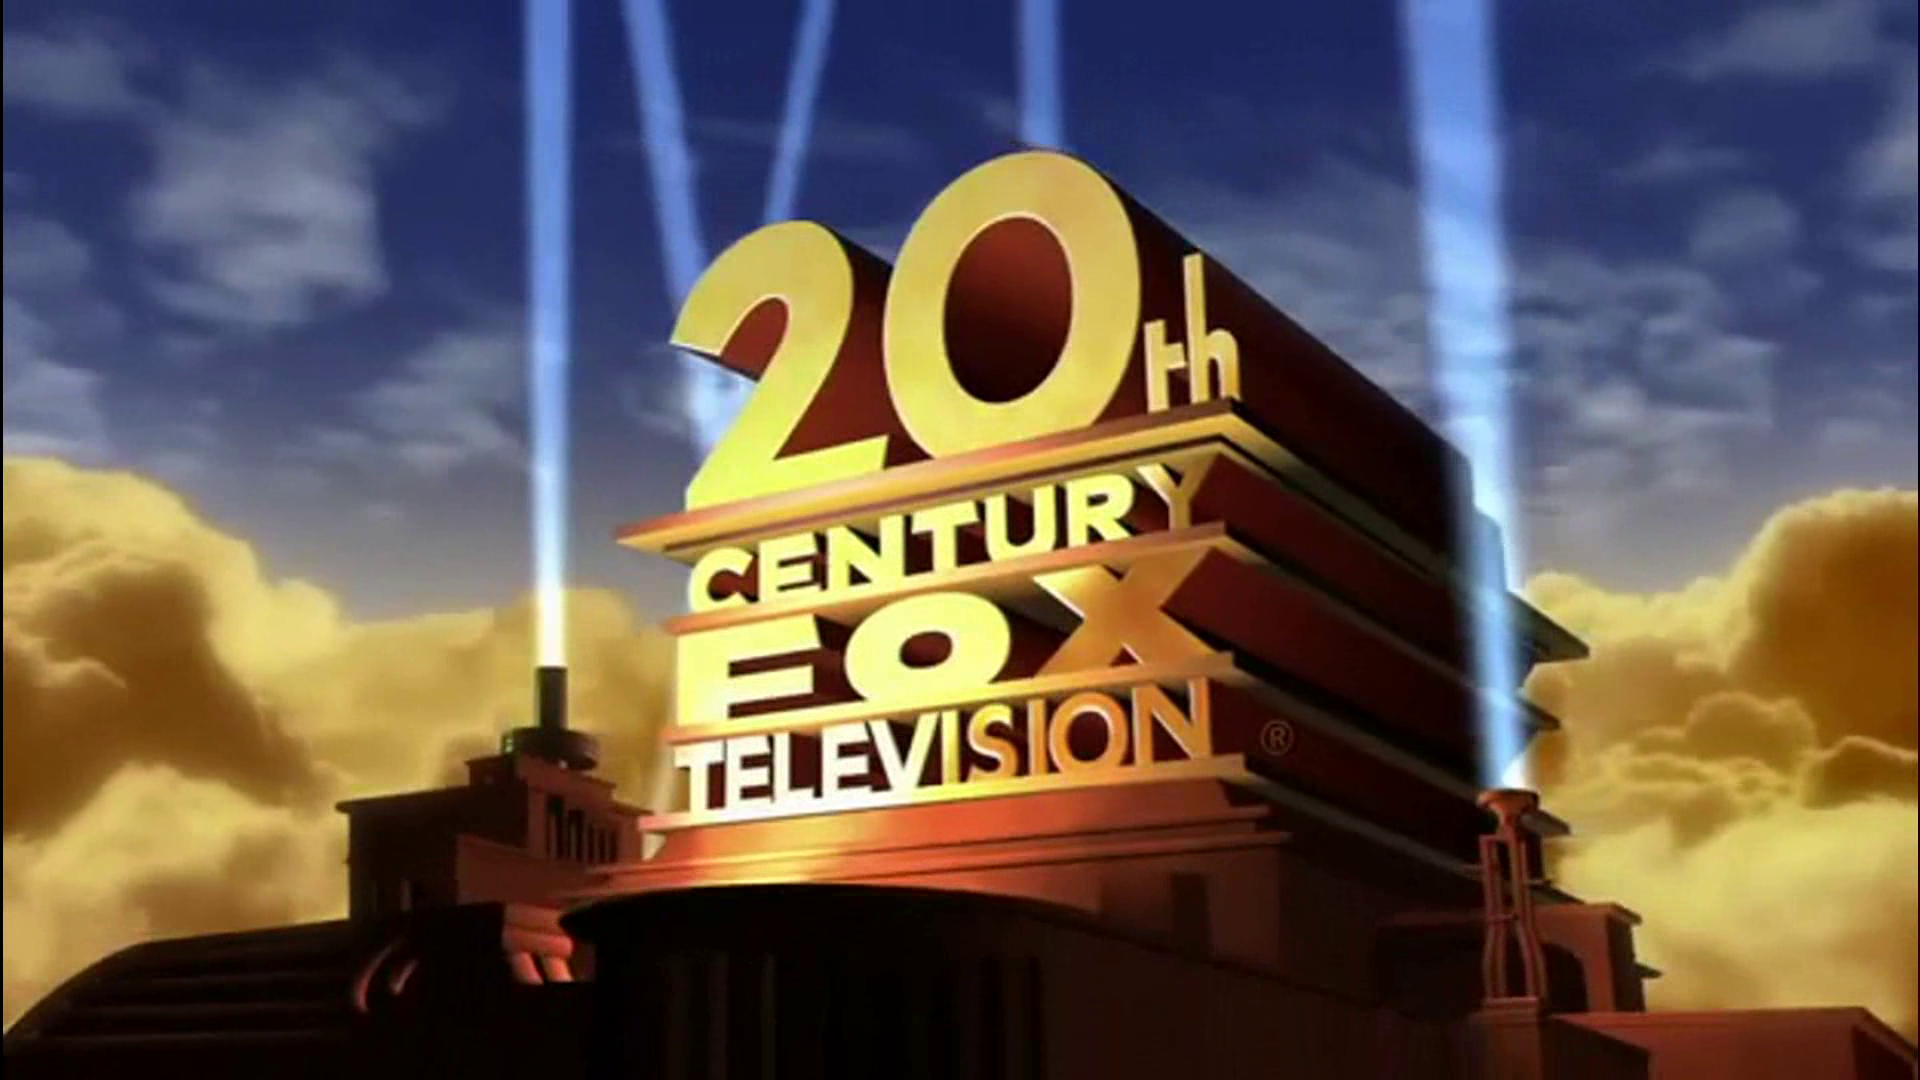 20th century fox logo: